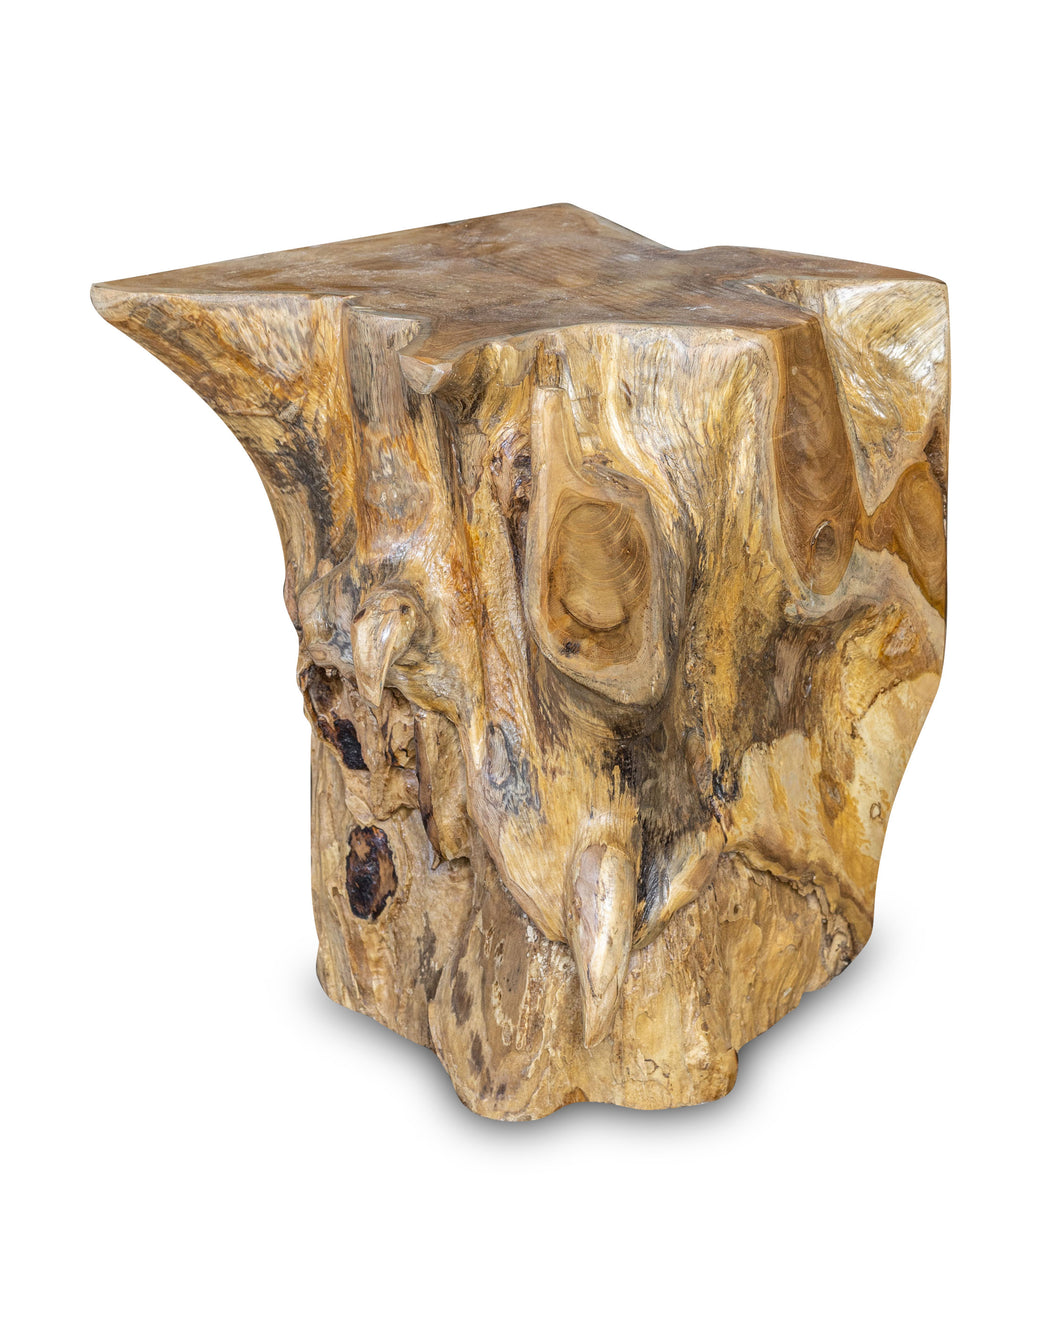 Square Solid Teak Wood Side Table, Natural Tree Stump Stool or End Table #15 16